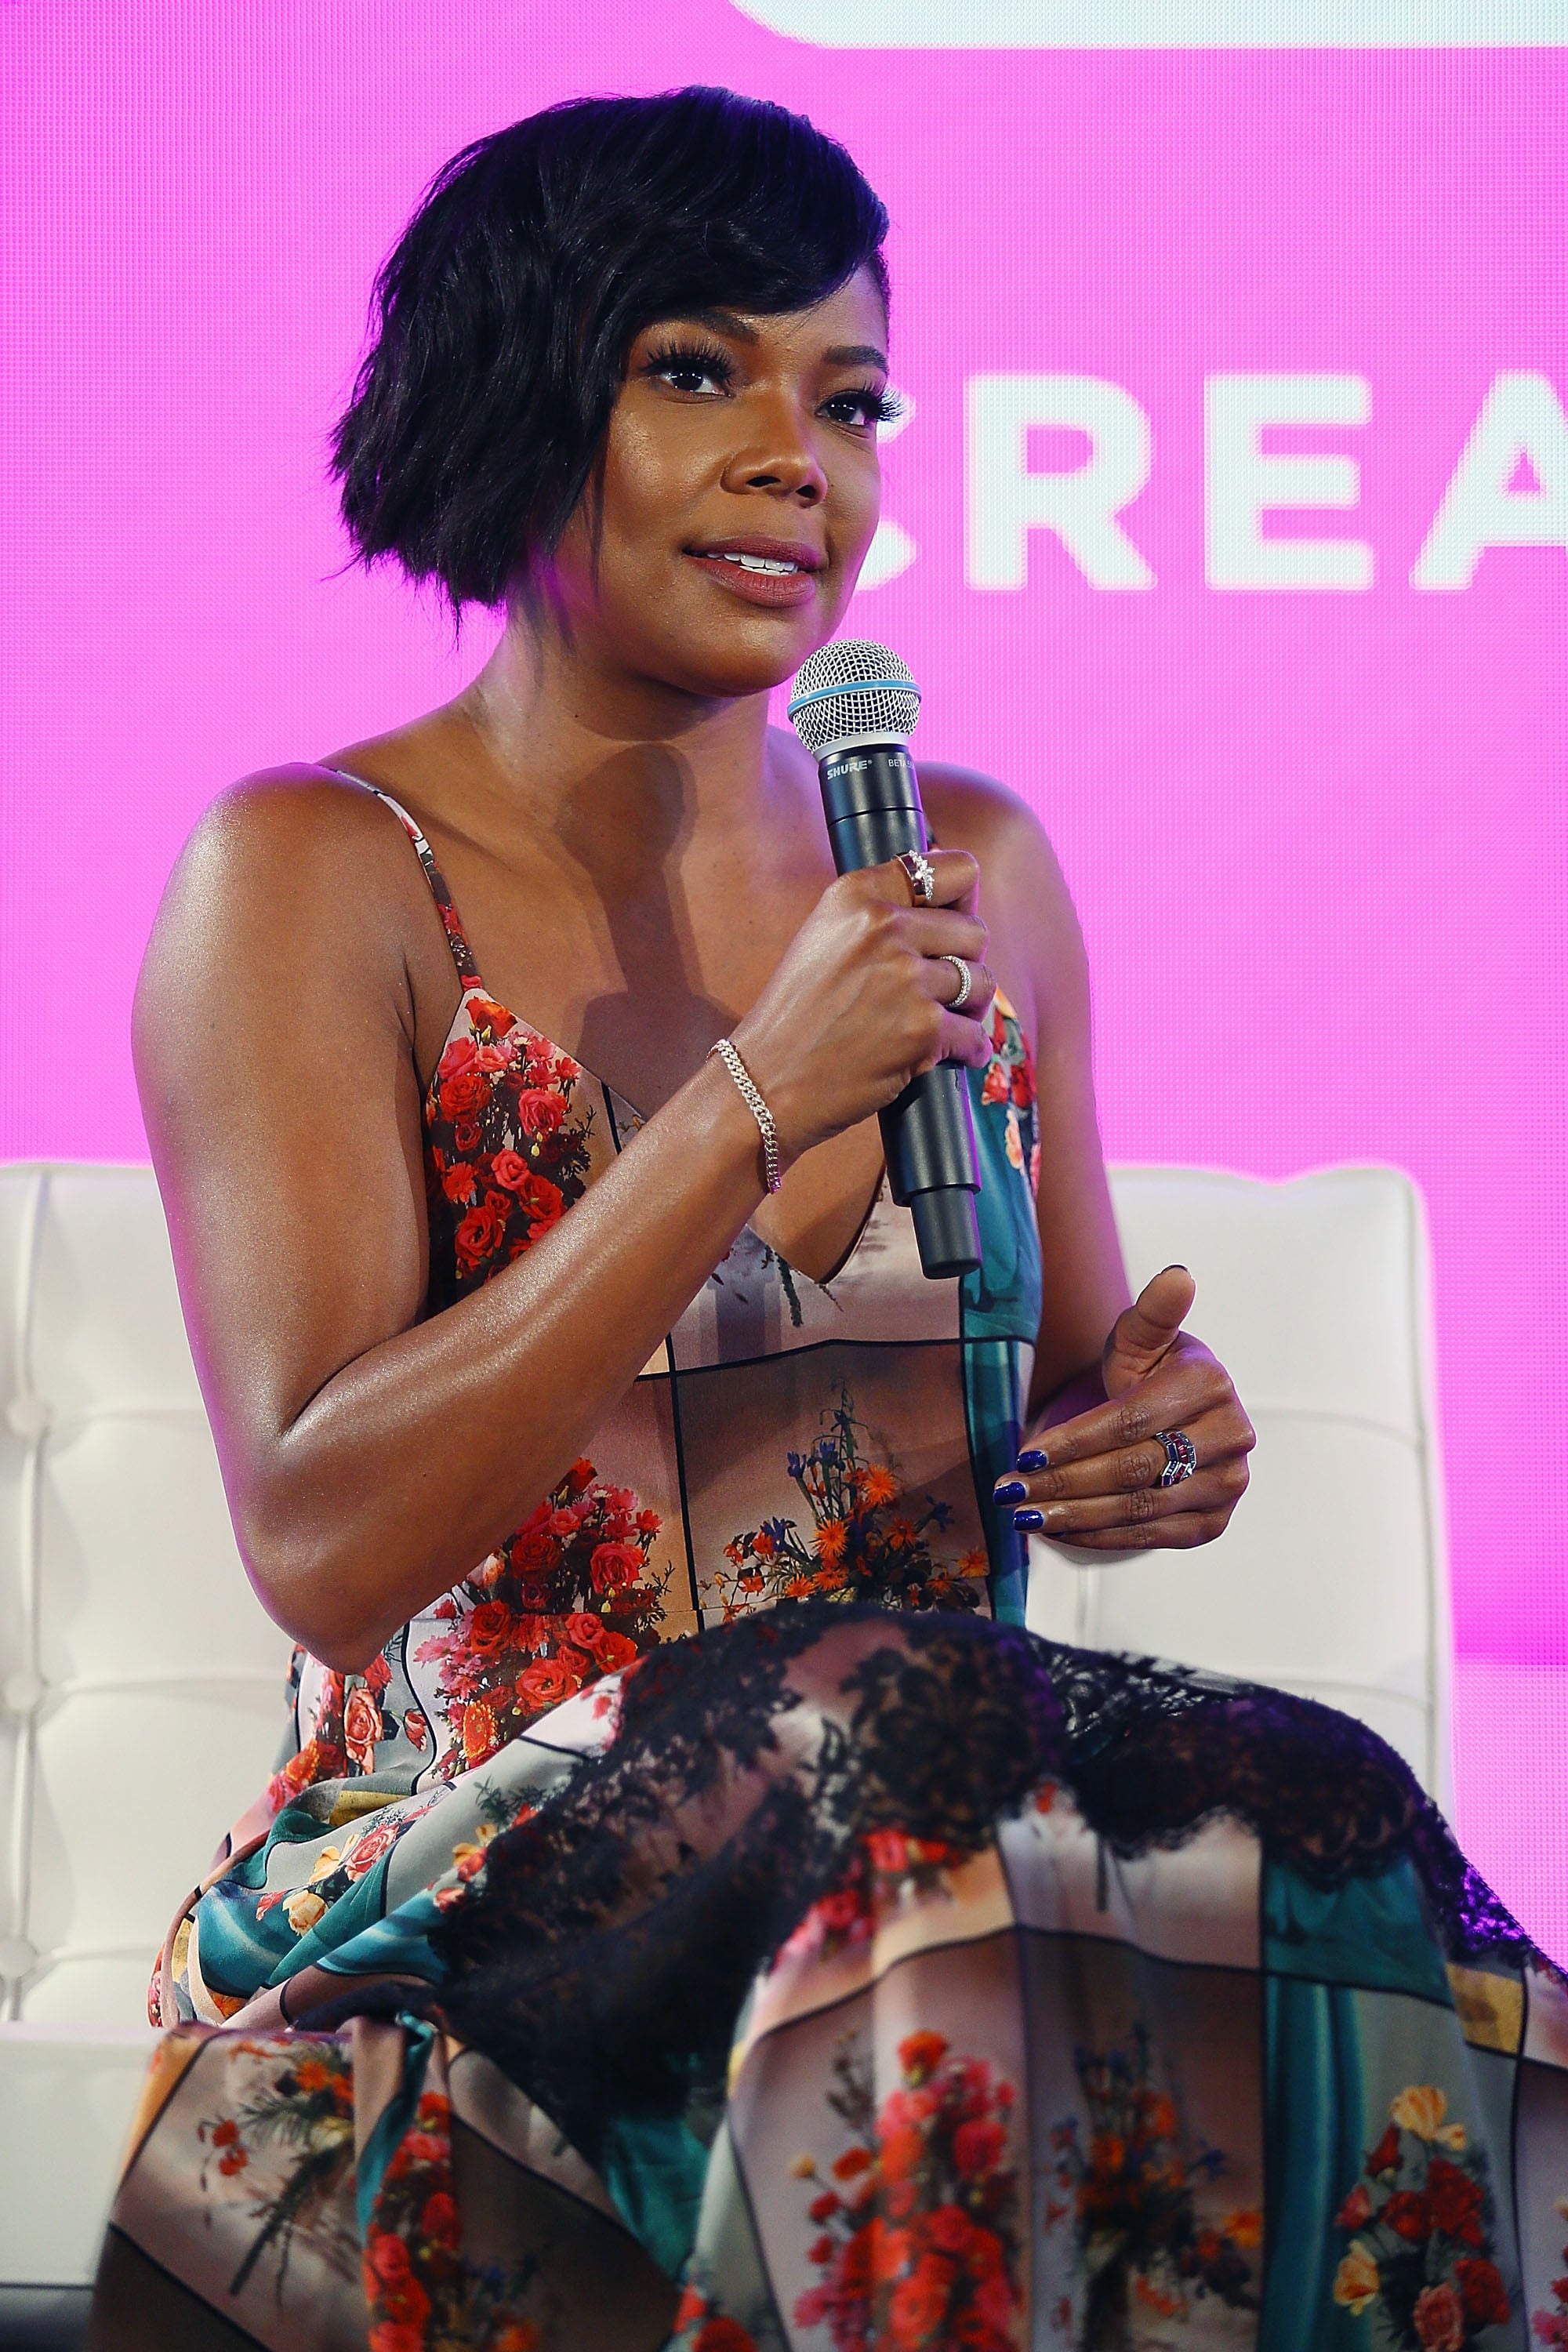 NEW YORK, NY - AUGUST 08:  Gabrielle Union attends #BlogHer18 Creators Summit at Pier 17 on August 8, 2018 in New York City.  (Photo by Astrid Stawiarz/Getty Images)